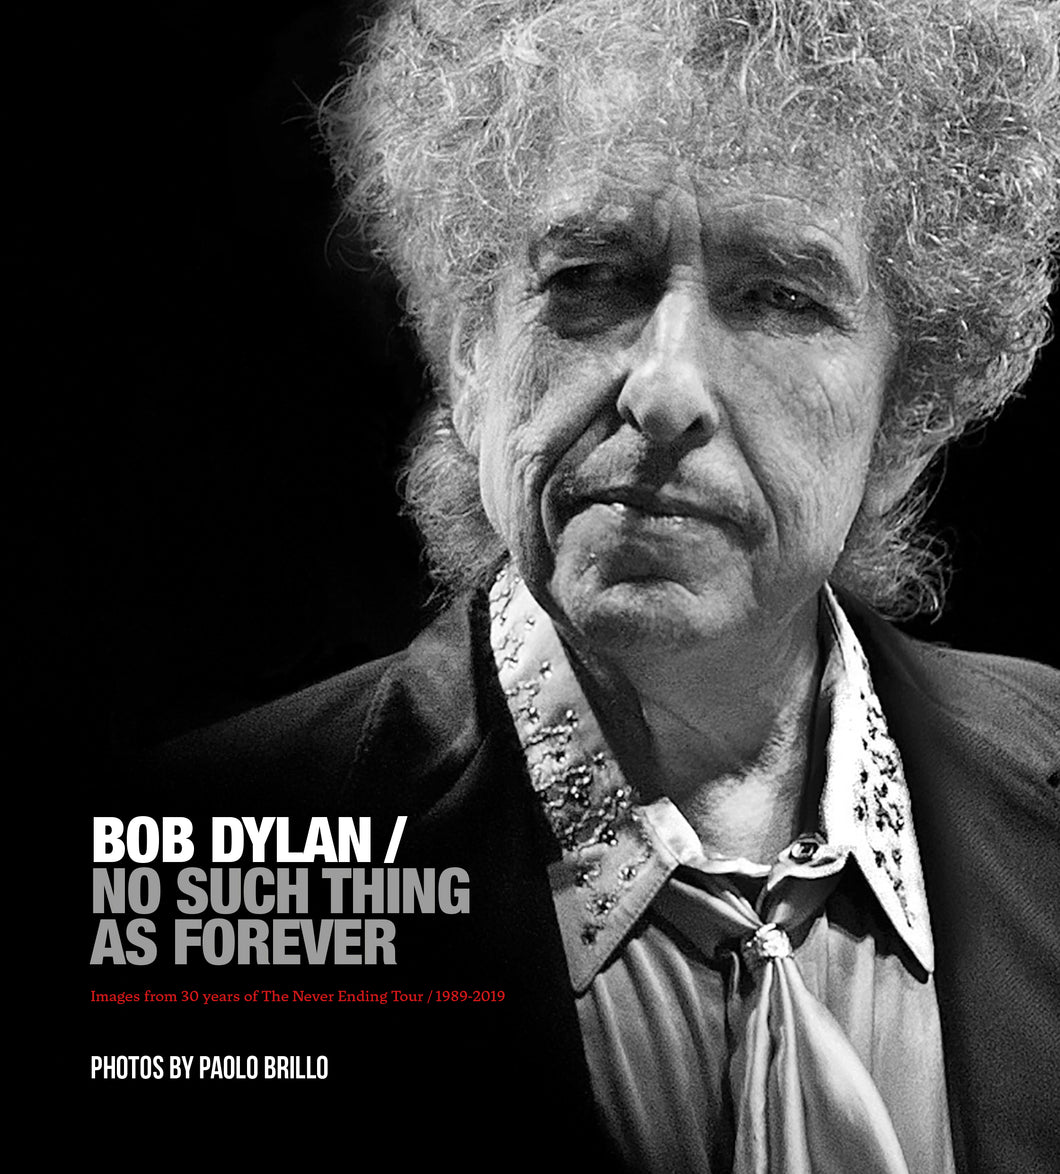 Bob Dylan / No Such Thing as Forever